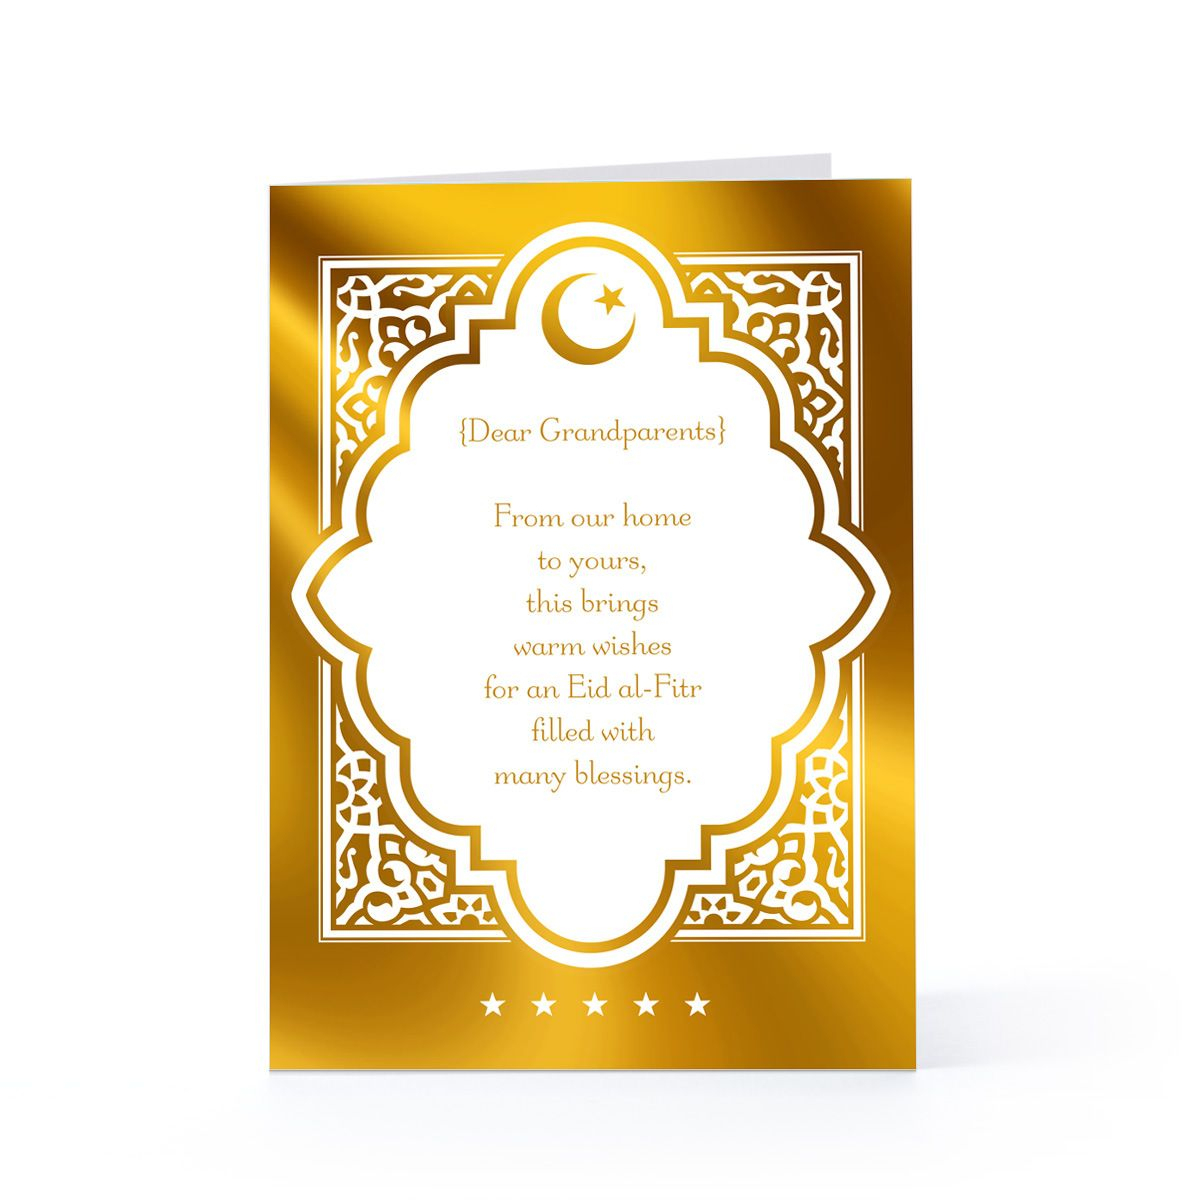 Free Greeting Cards Printable Hallmark. Blessed Eid Alfitr Eid - Free Hallmark Christmas Cards Printable